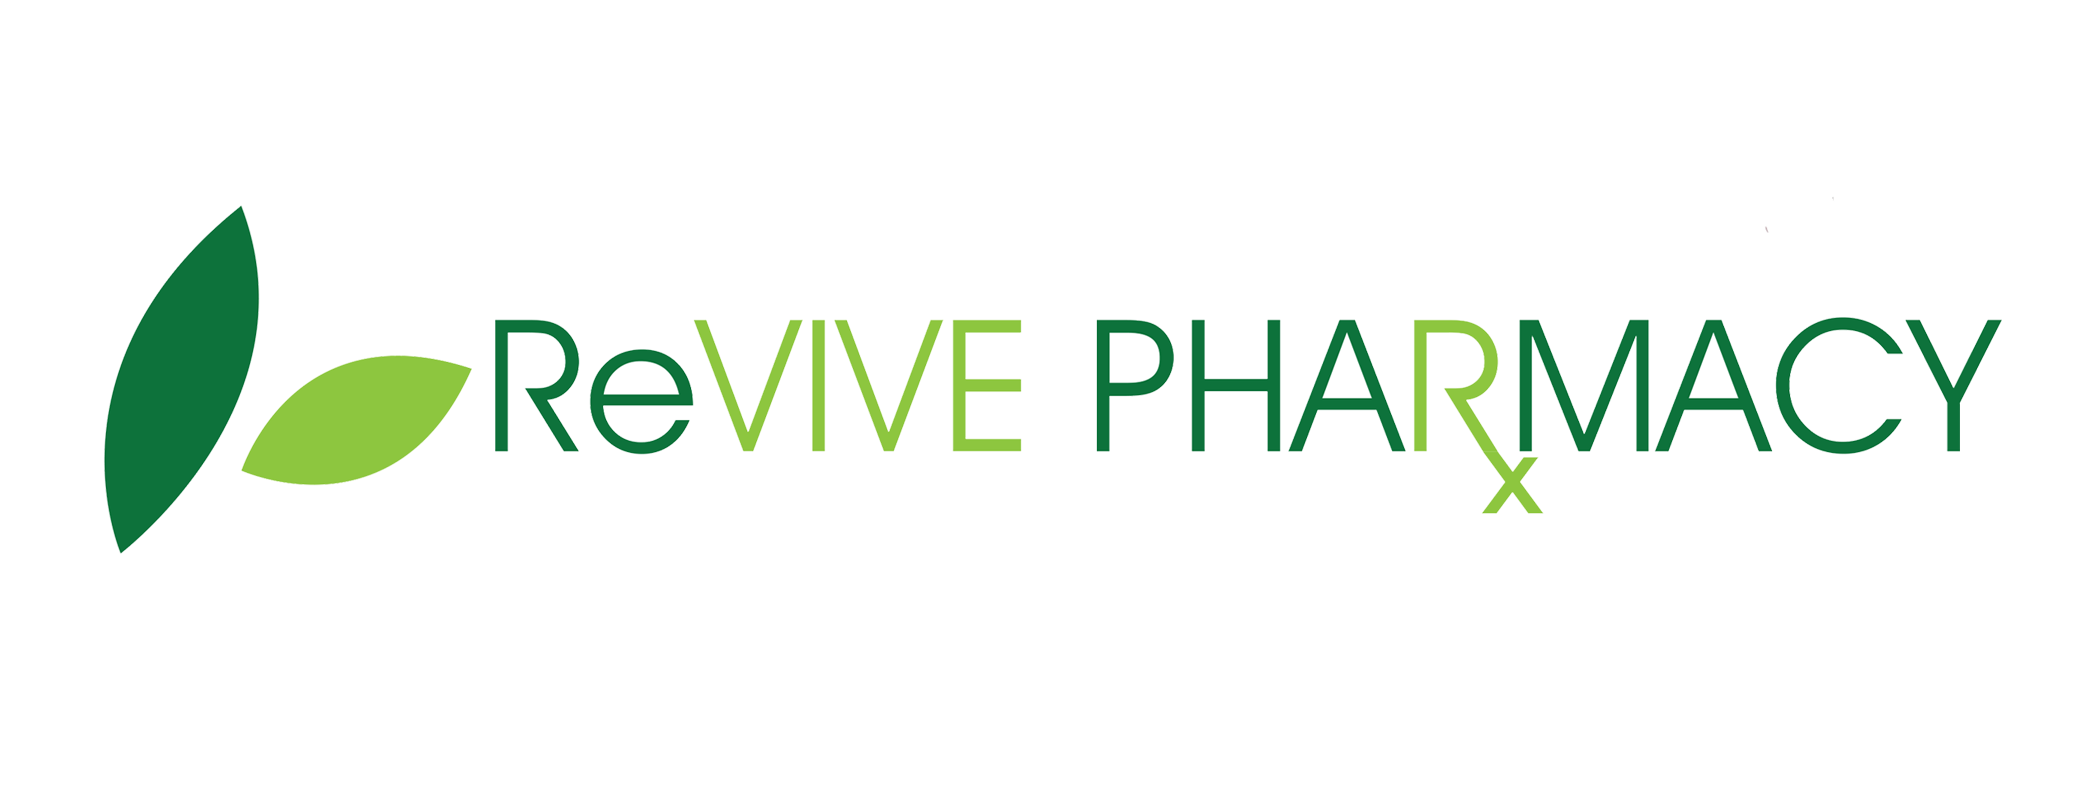 RI - Revive Pharmacy